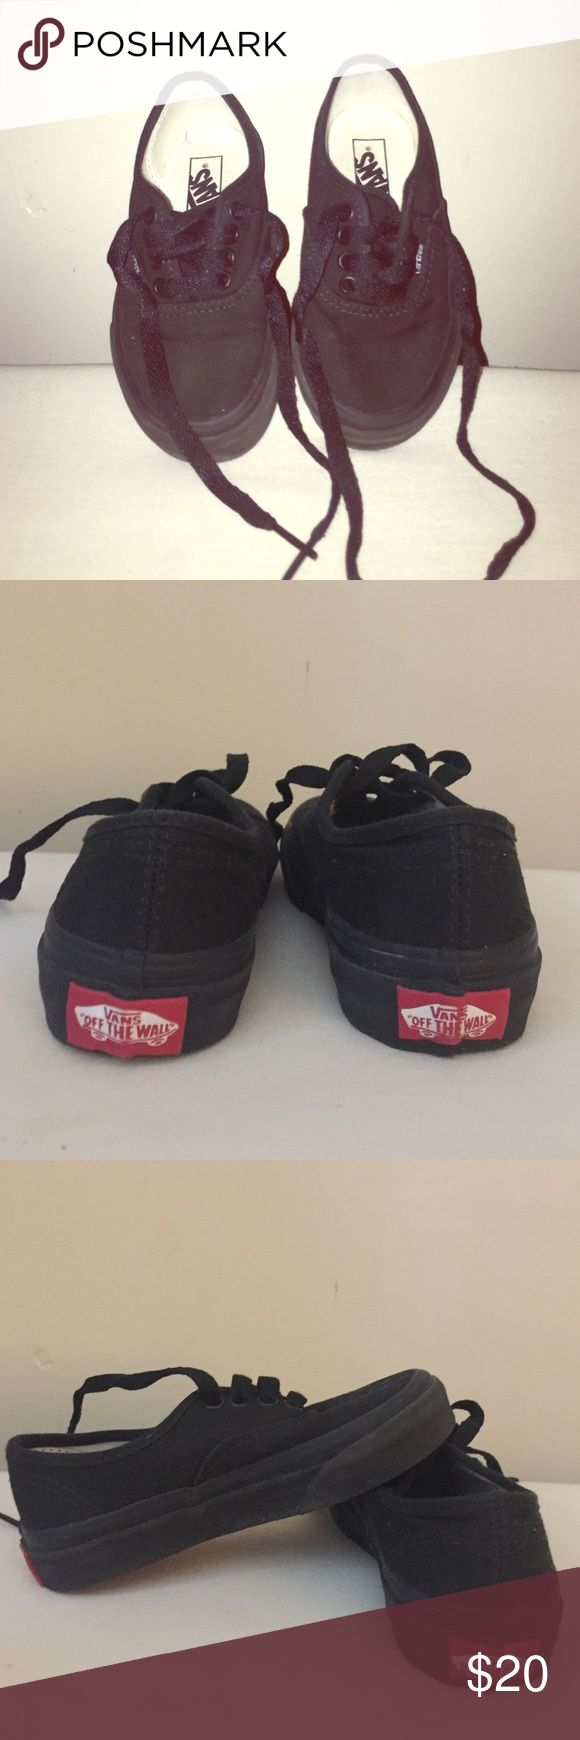 Like new Vans for kids All black vans for boy, size 10.5. Used only once! Excellent condition! Vans Shoes Sneakers